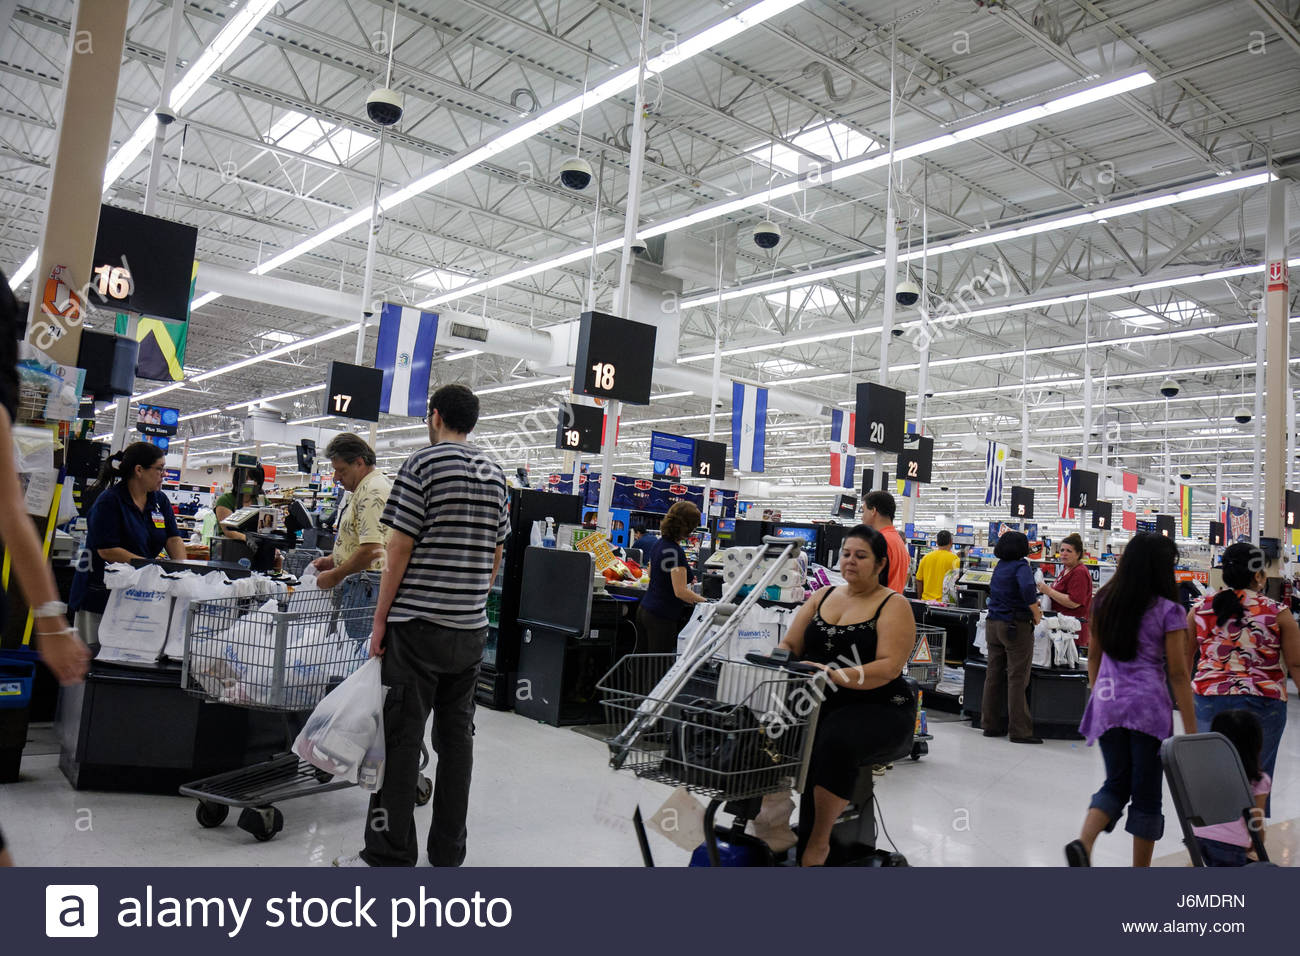 Miami Hialeah Florida Wal-Mart Walmart shopping check-out line queue